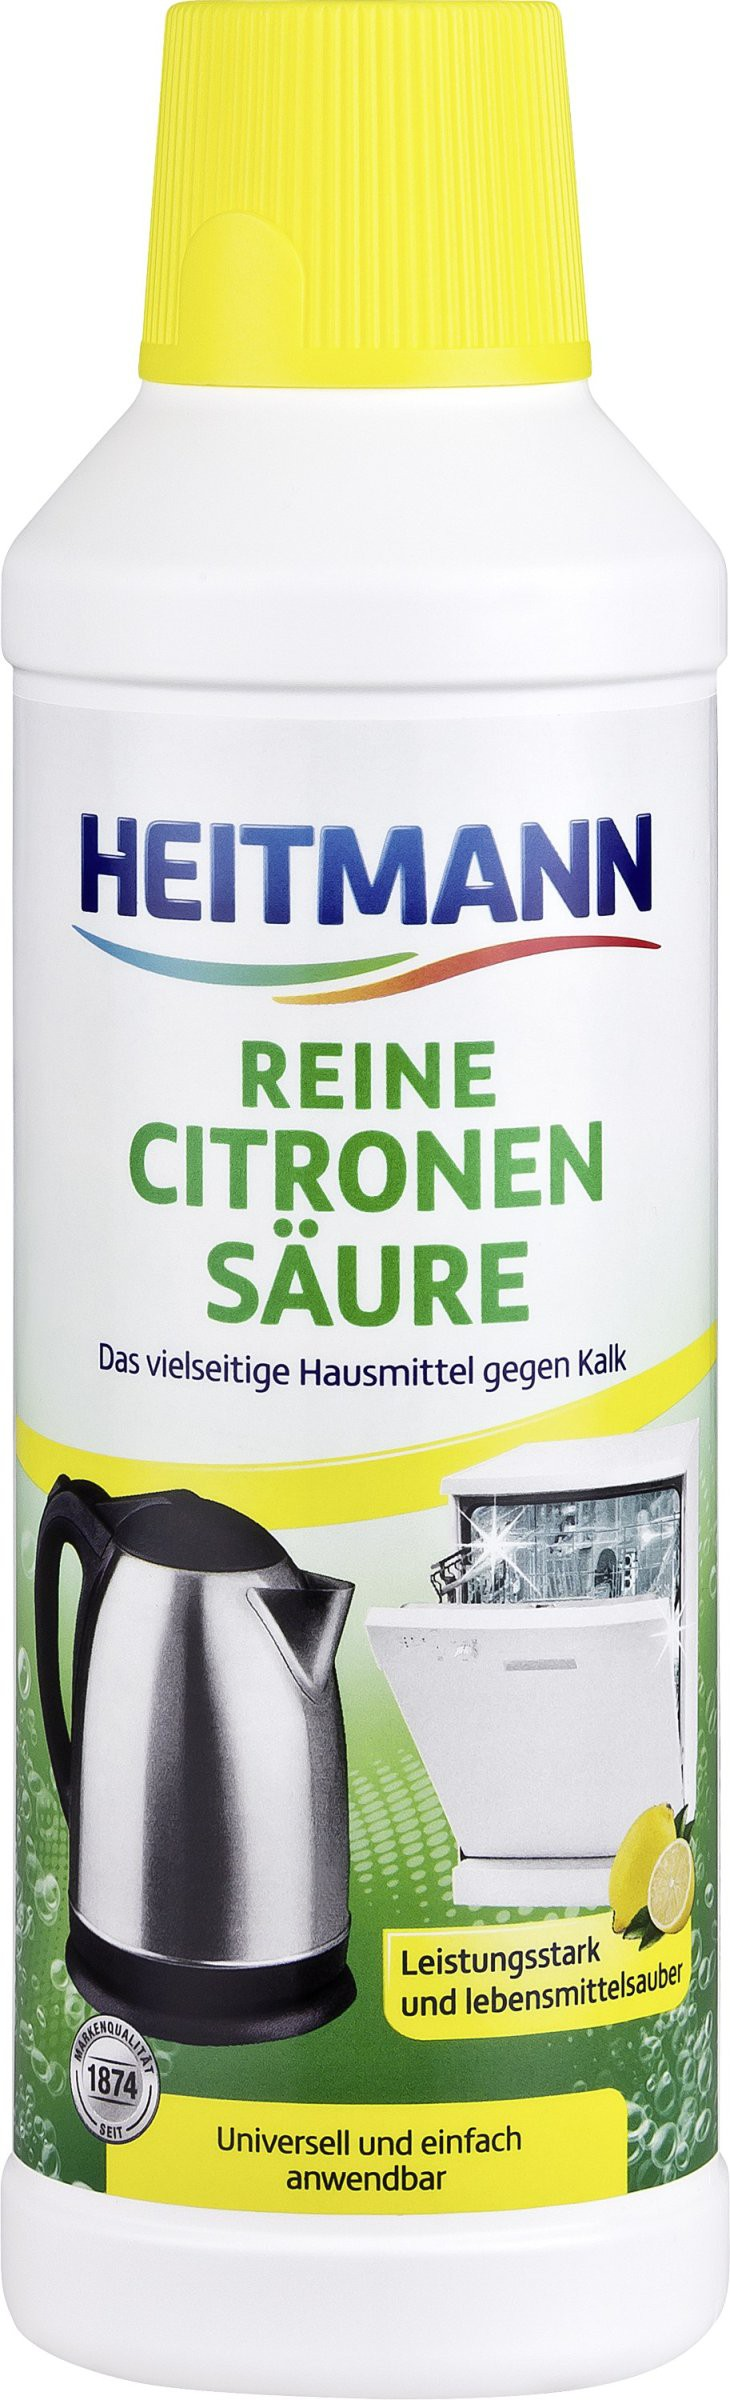 heitmann reine citronens ure fl ssig 500 ml flasche online kaufen. Black Bedroom Furniture Sets. Home Design Ideas